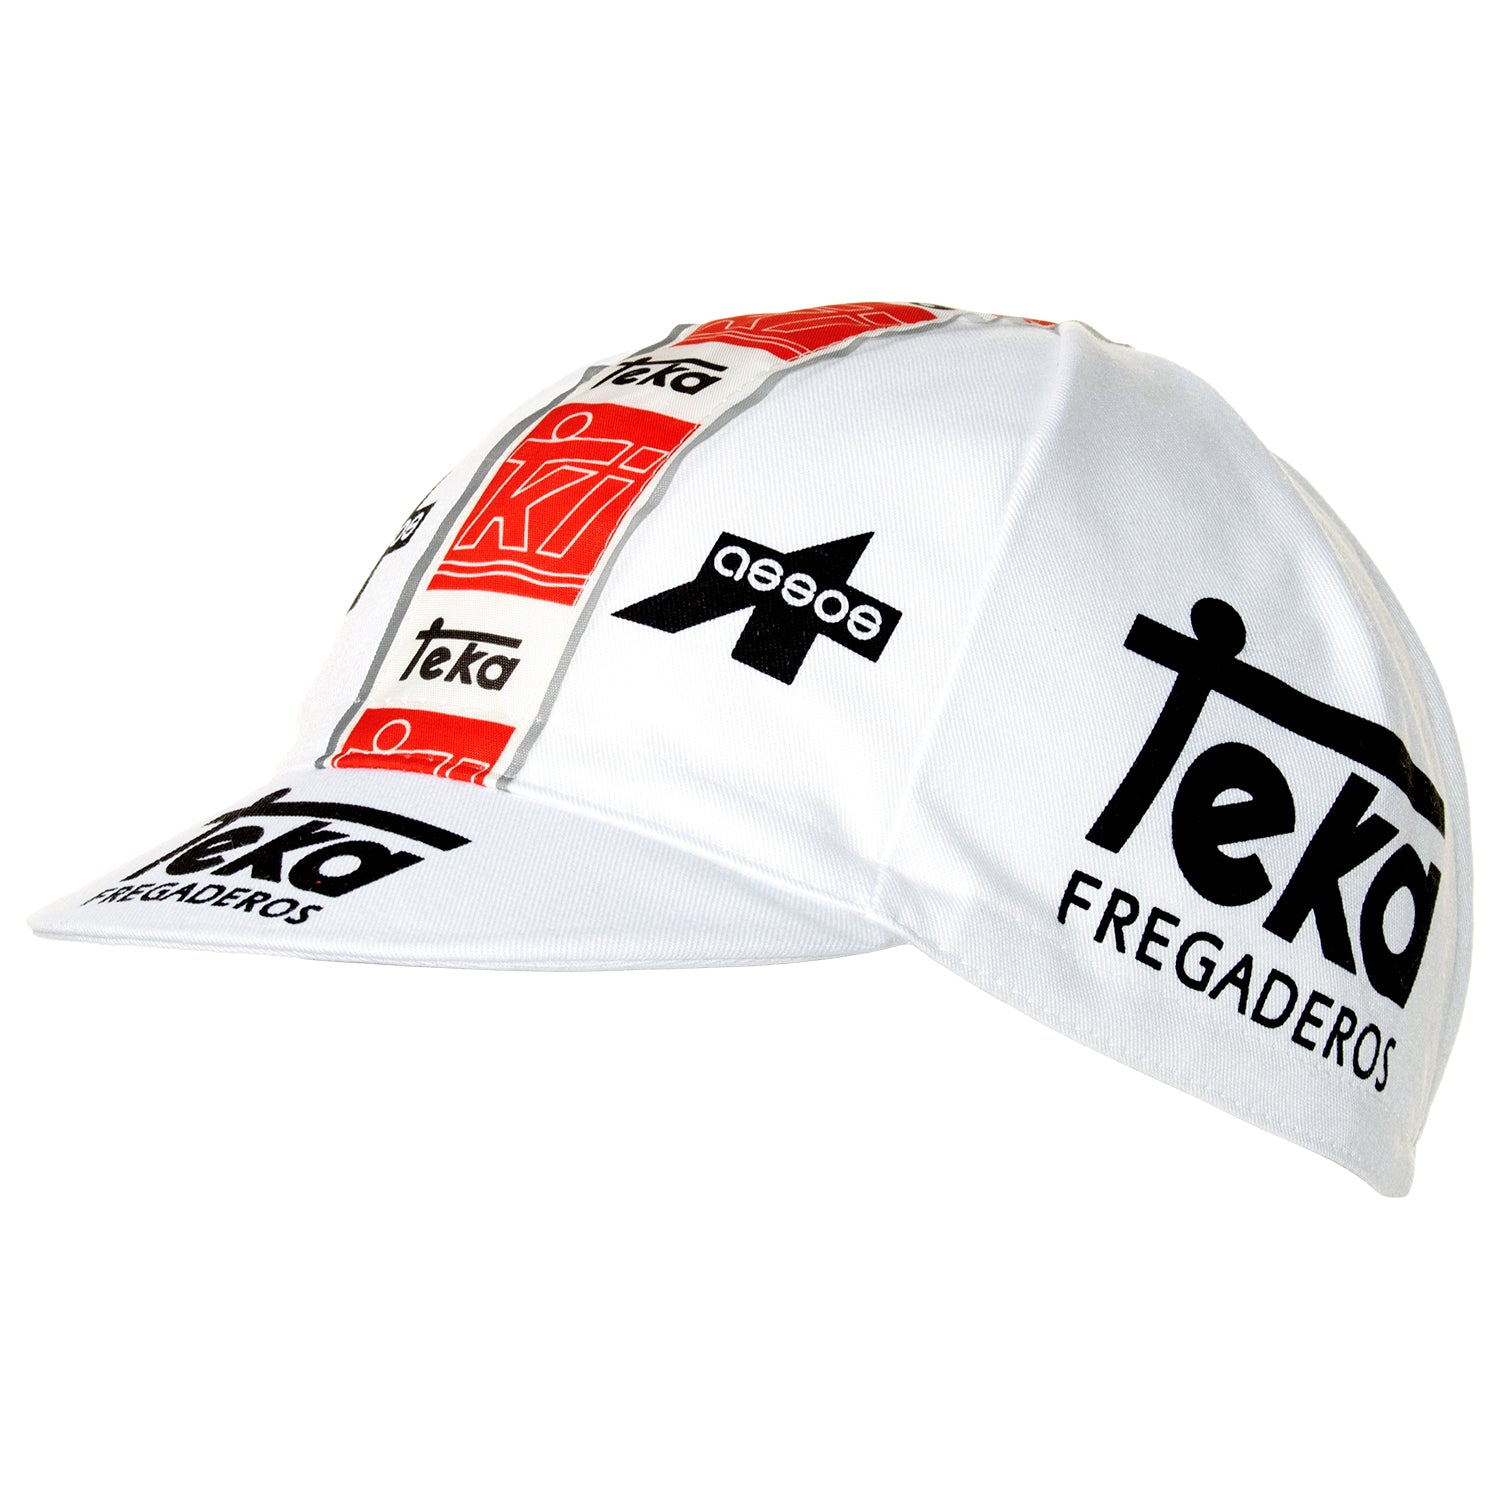 Teka Fregaderos Retro Cotton Cycling Cap